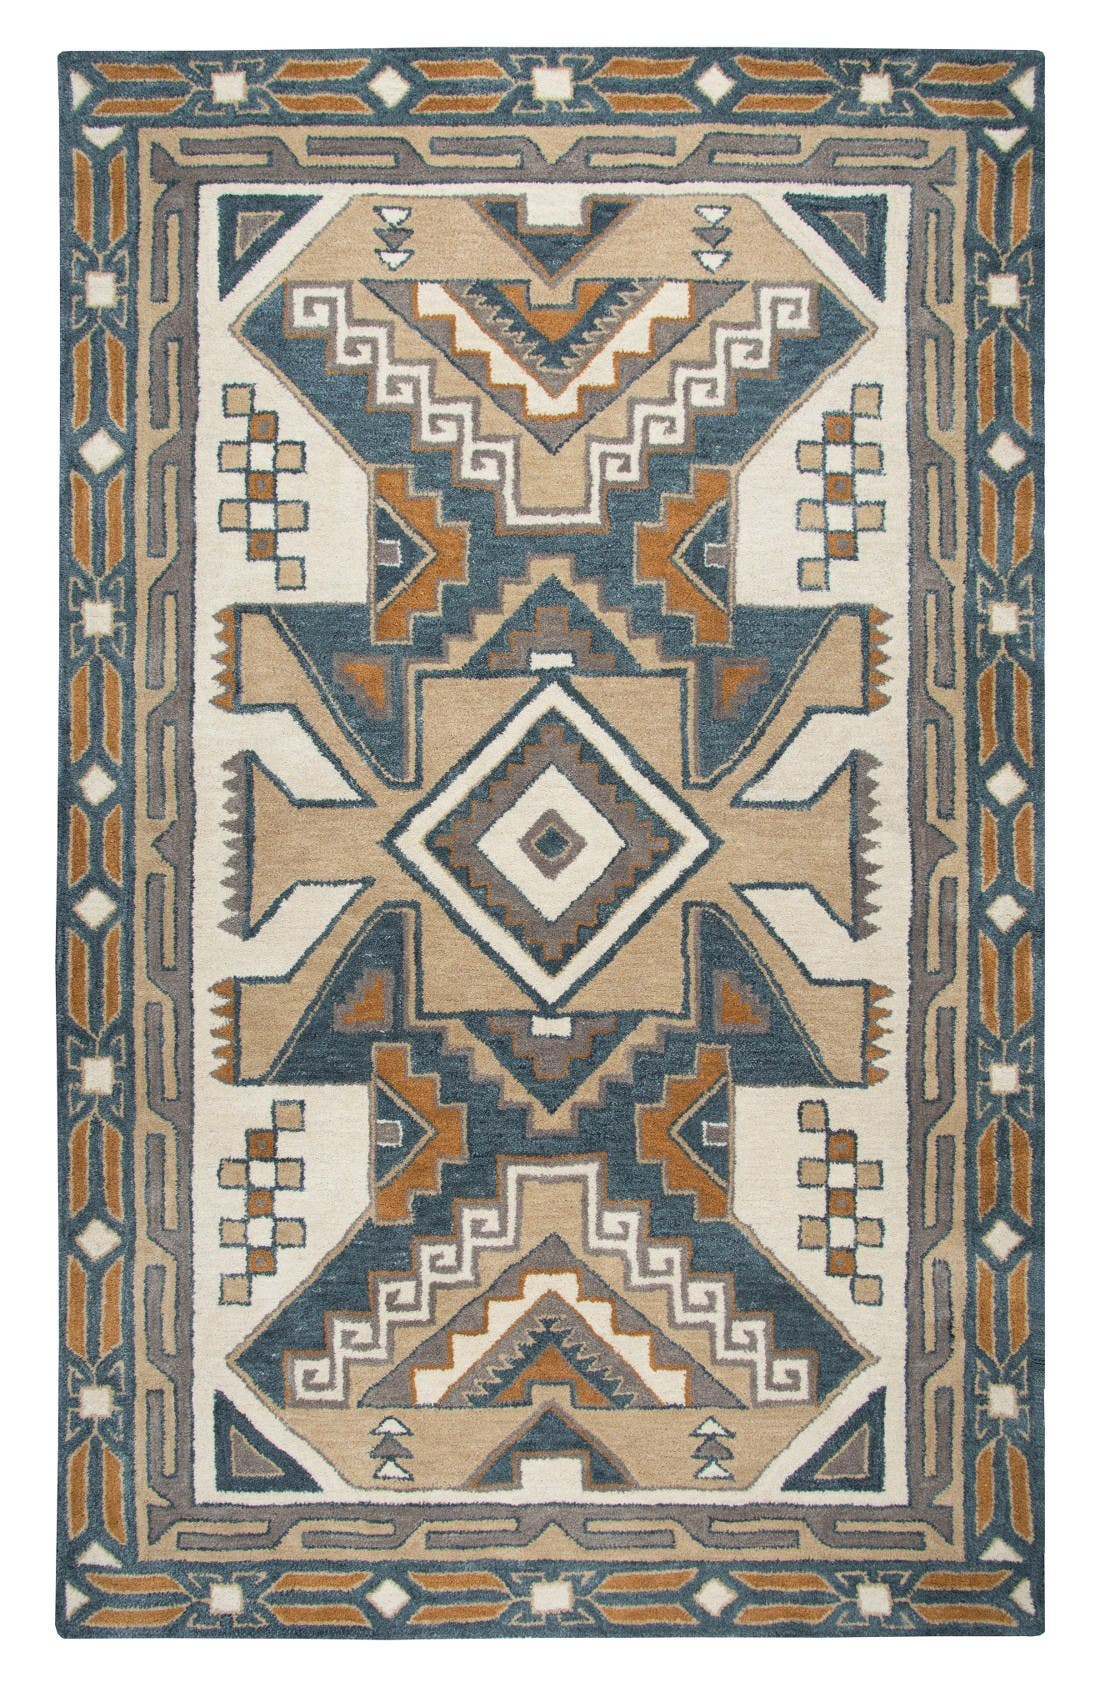 Main Image - Rizzy Home Urban Tiles Hand Tufted Wool Rug